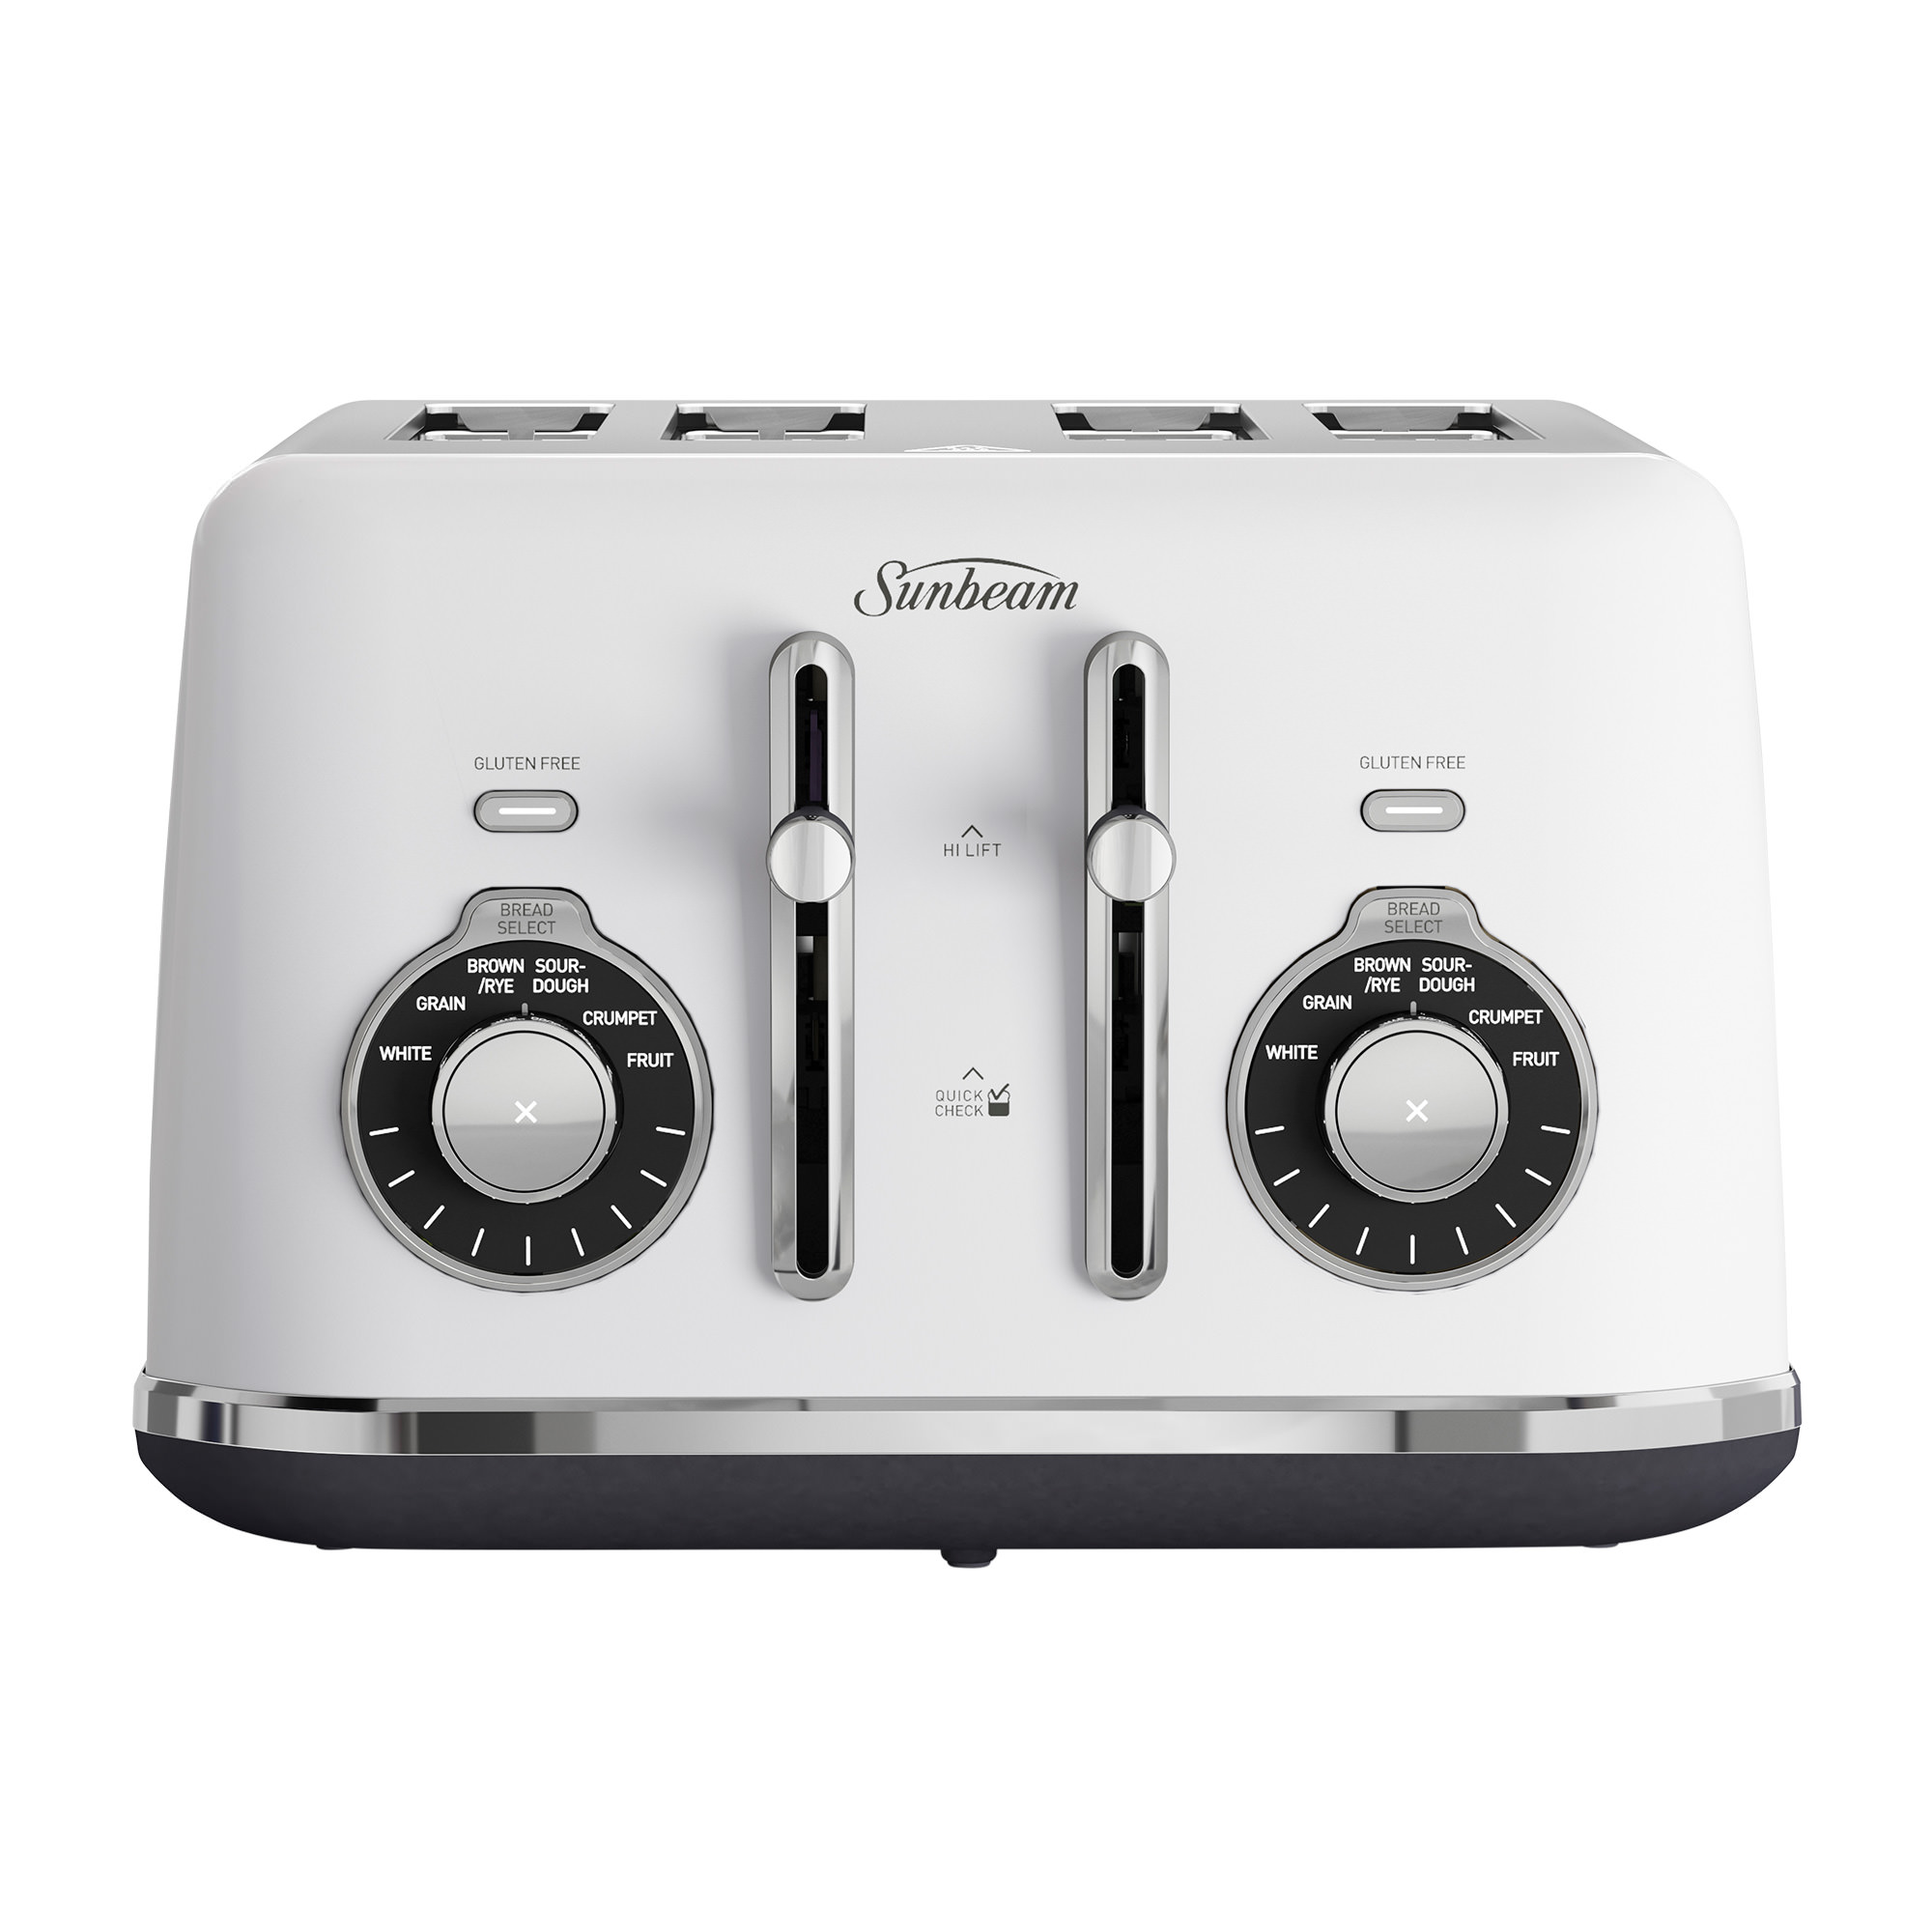 Sunbeam Alinea Select 4 Slice Toaster Ocean Mist White